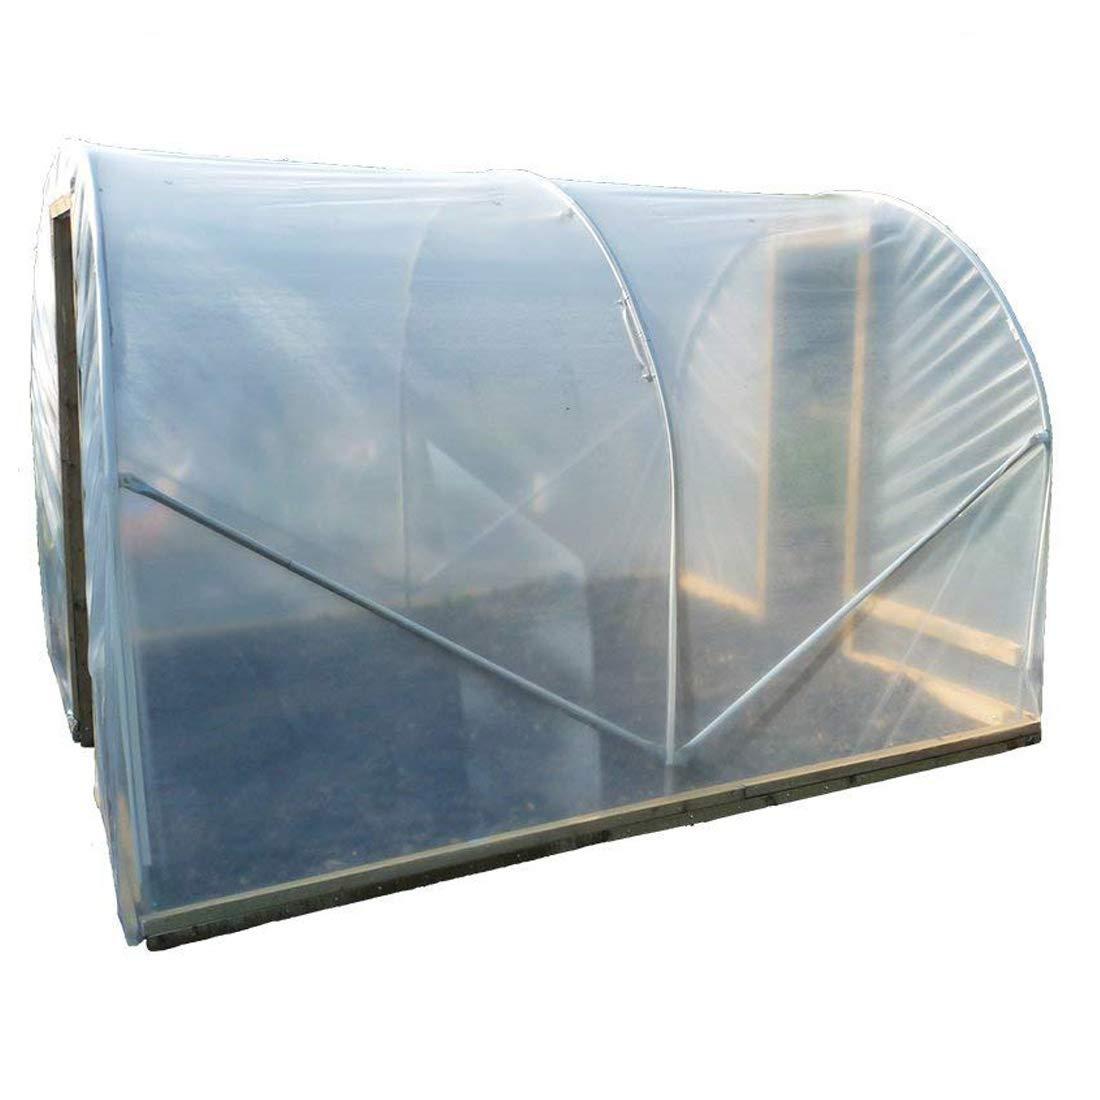 Greenhouse Polytunnel Cover | 9.2m x 10m | 720 Gauge Clear Polythene Film Sheeting Elixir